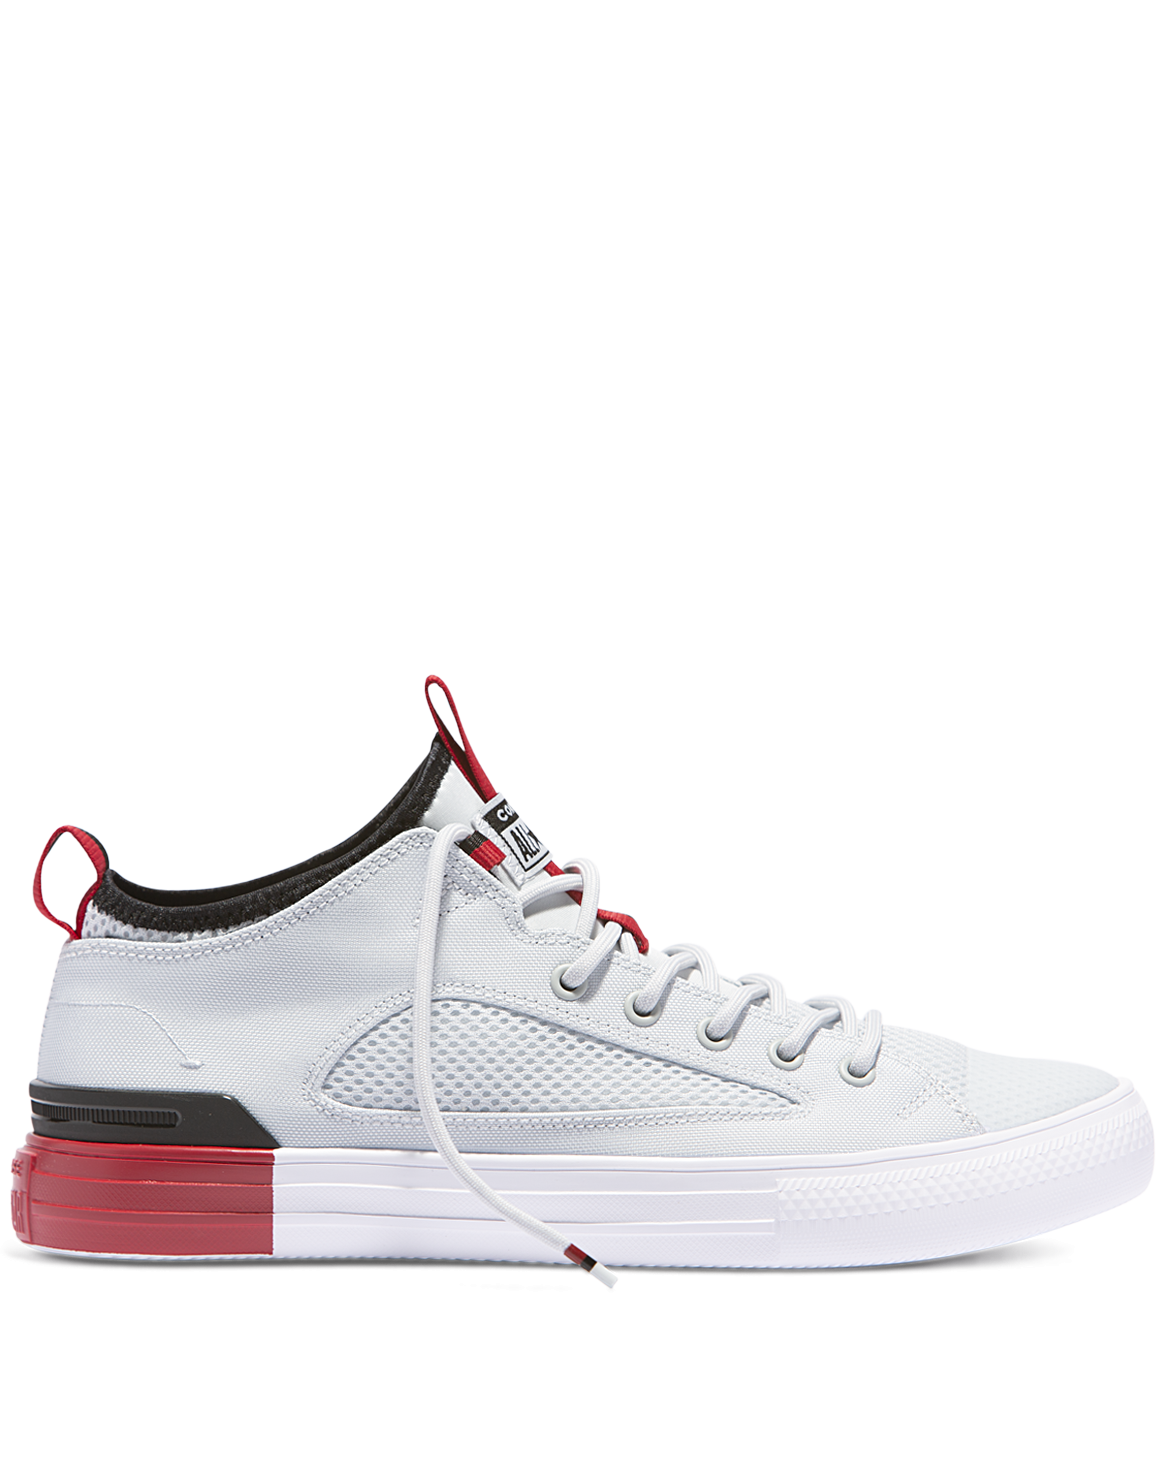 145ceb0bf010b2 Converse Chuck Taylor Ultra Colour Block Mesh Low Top - Pure Platinum is a  lace up sneaker with red colour block heel. Street style fashion ...